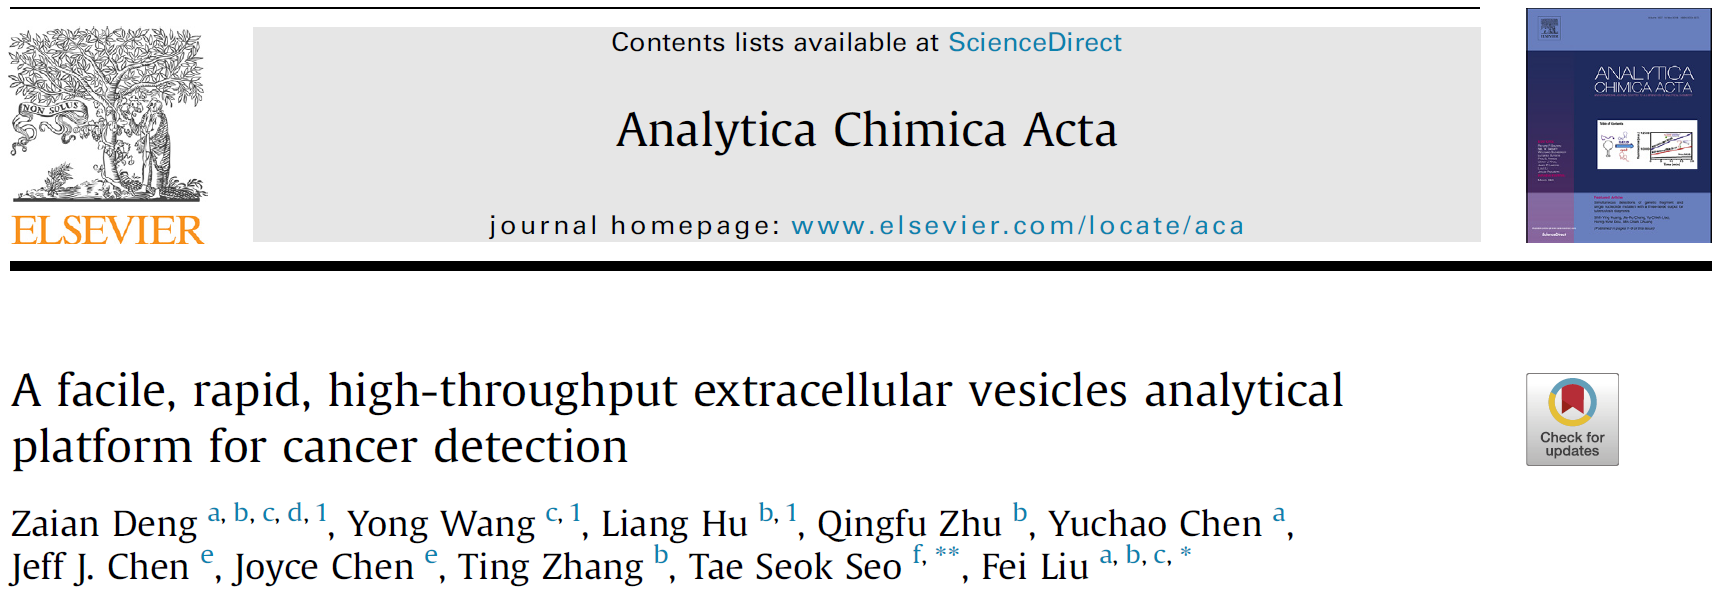 Zaian Deng, Yong Wang , Liang Hu, et al. A facile, rapid, high-throughput extracellular vesicles analytical platform for cancer detection. Analytica Chimica Acta 1138 (2020) 132e140.